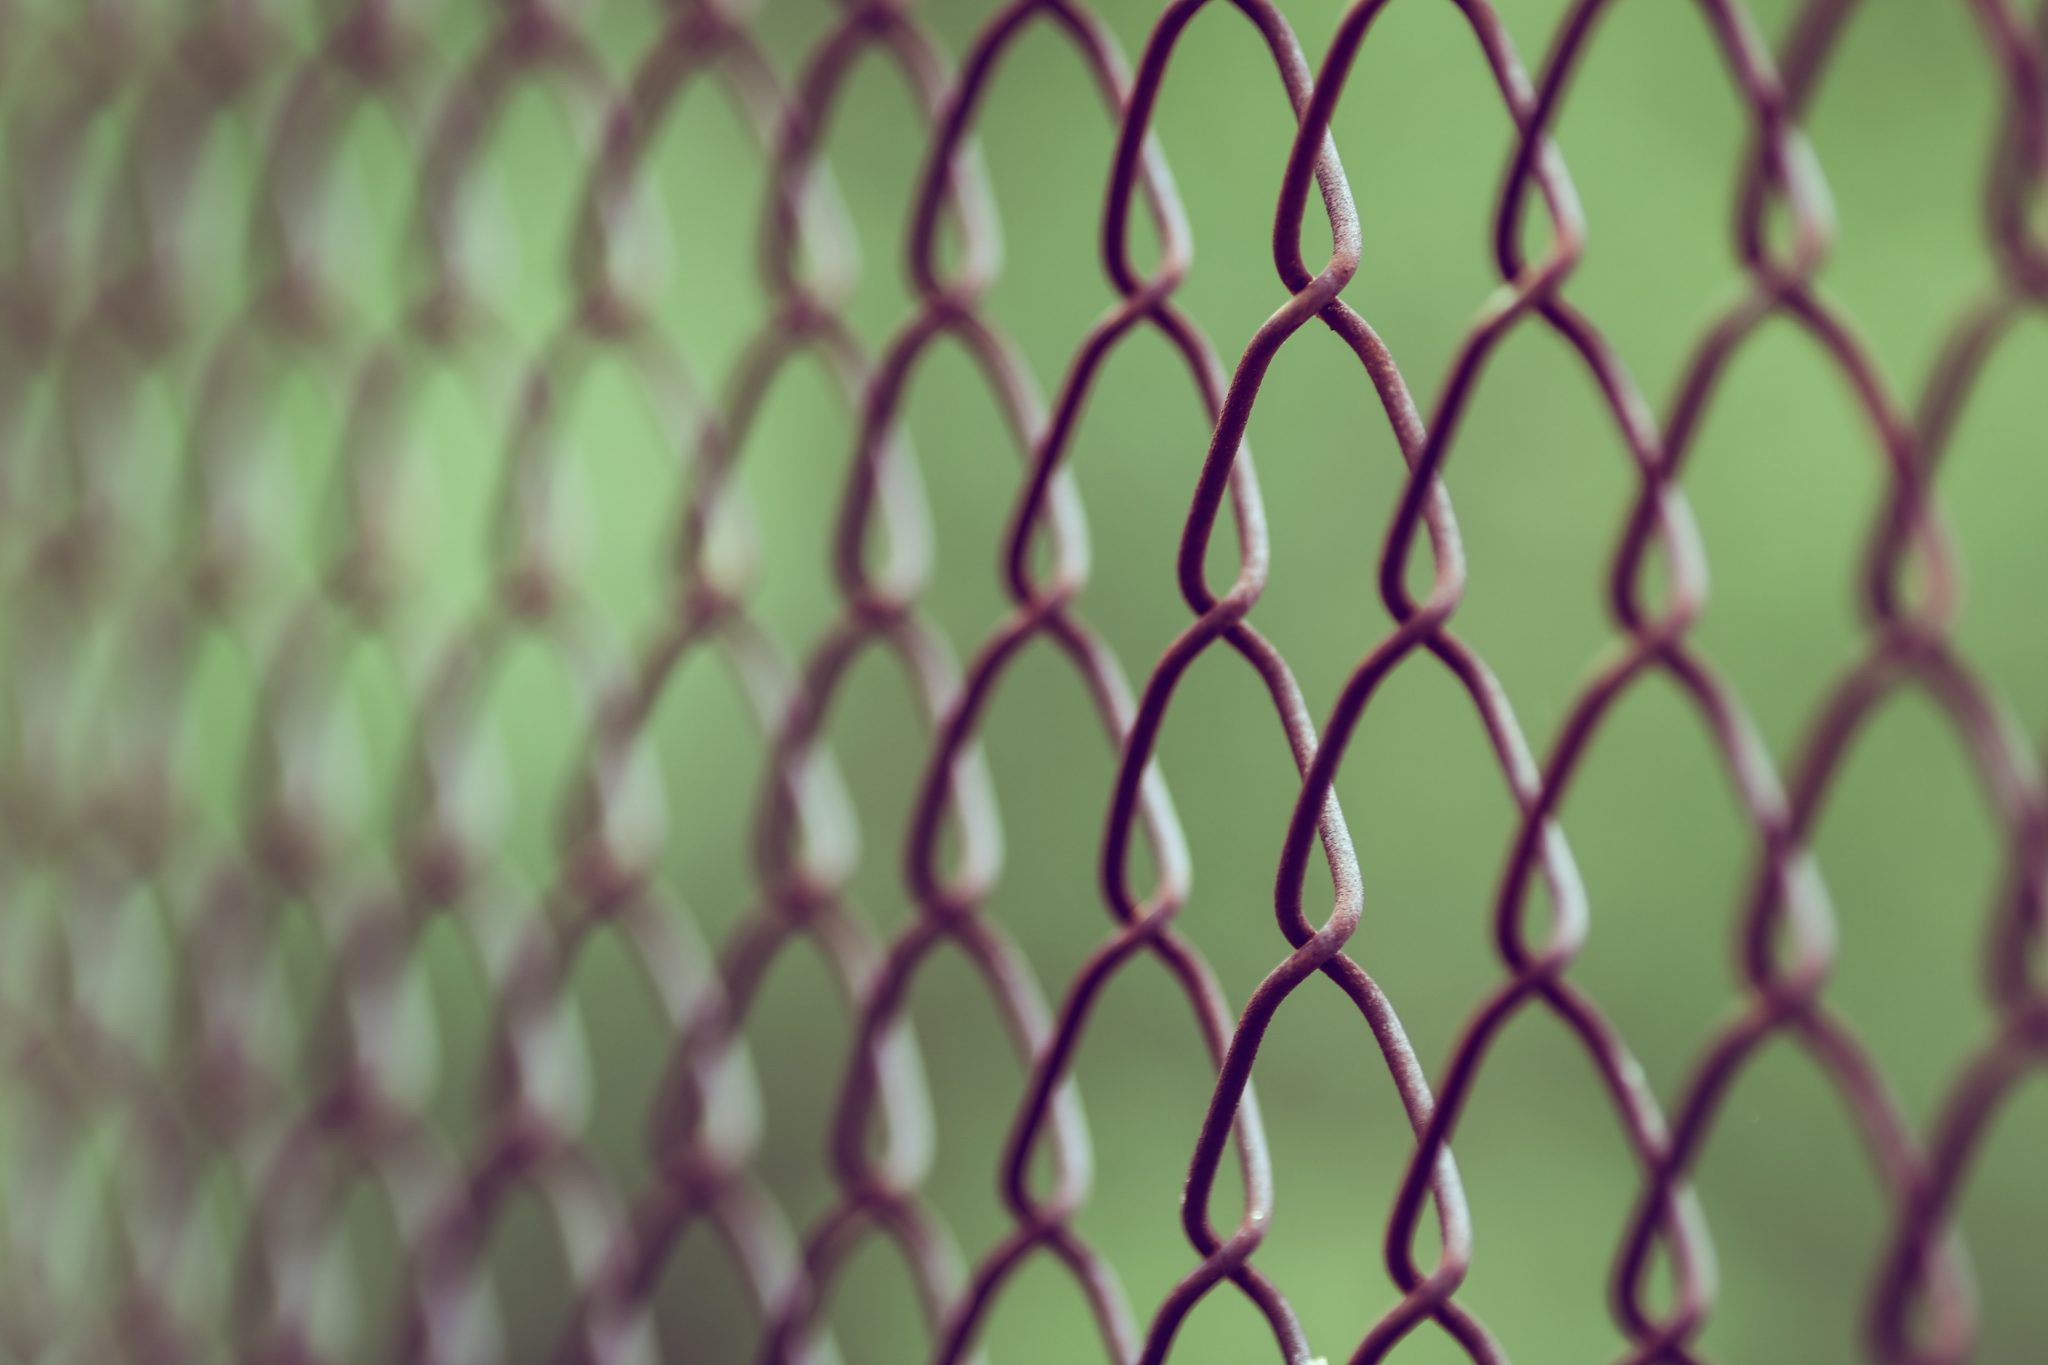 A selective focus shot of a chainlink fence.